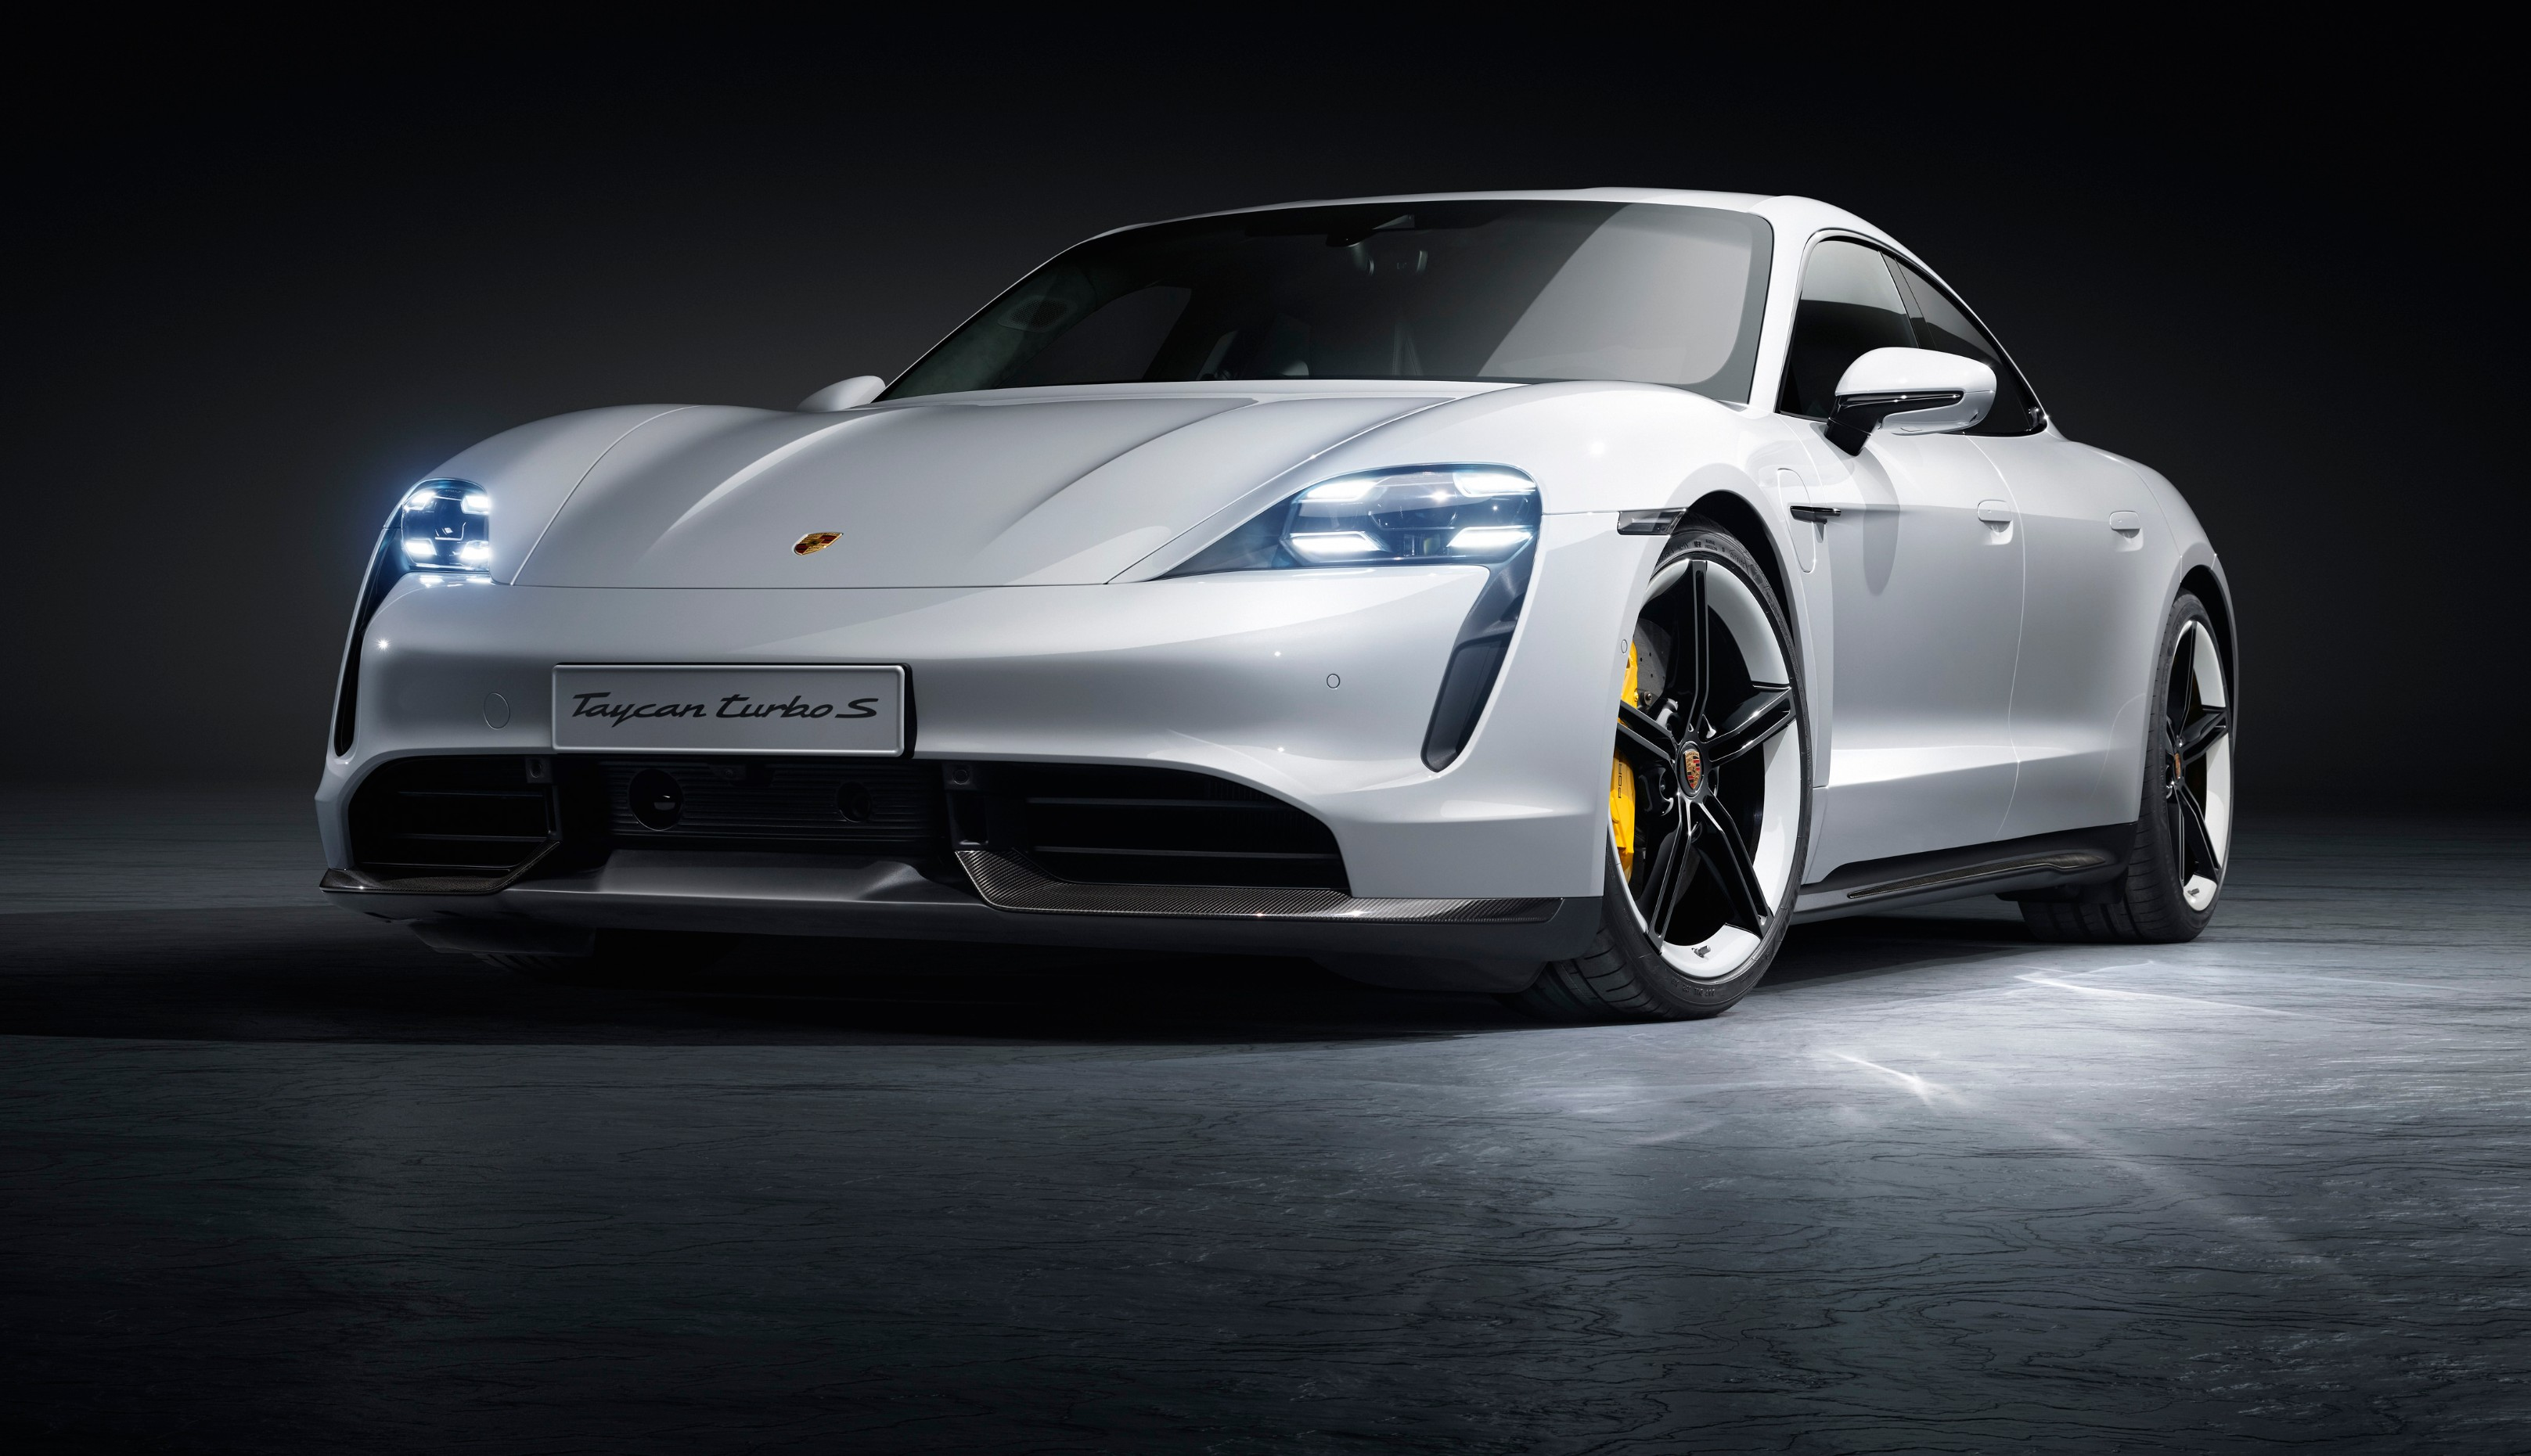 Porsche Taycan is here 0,60 mph in 2.6 sec, 750 HP, good